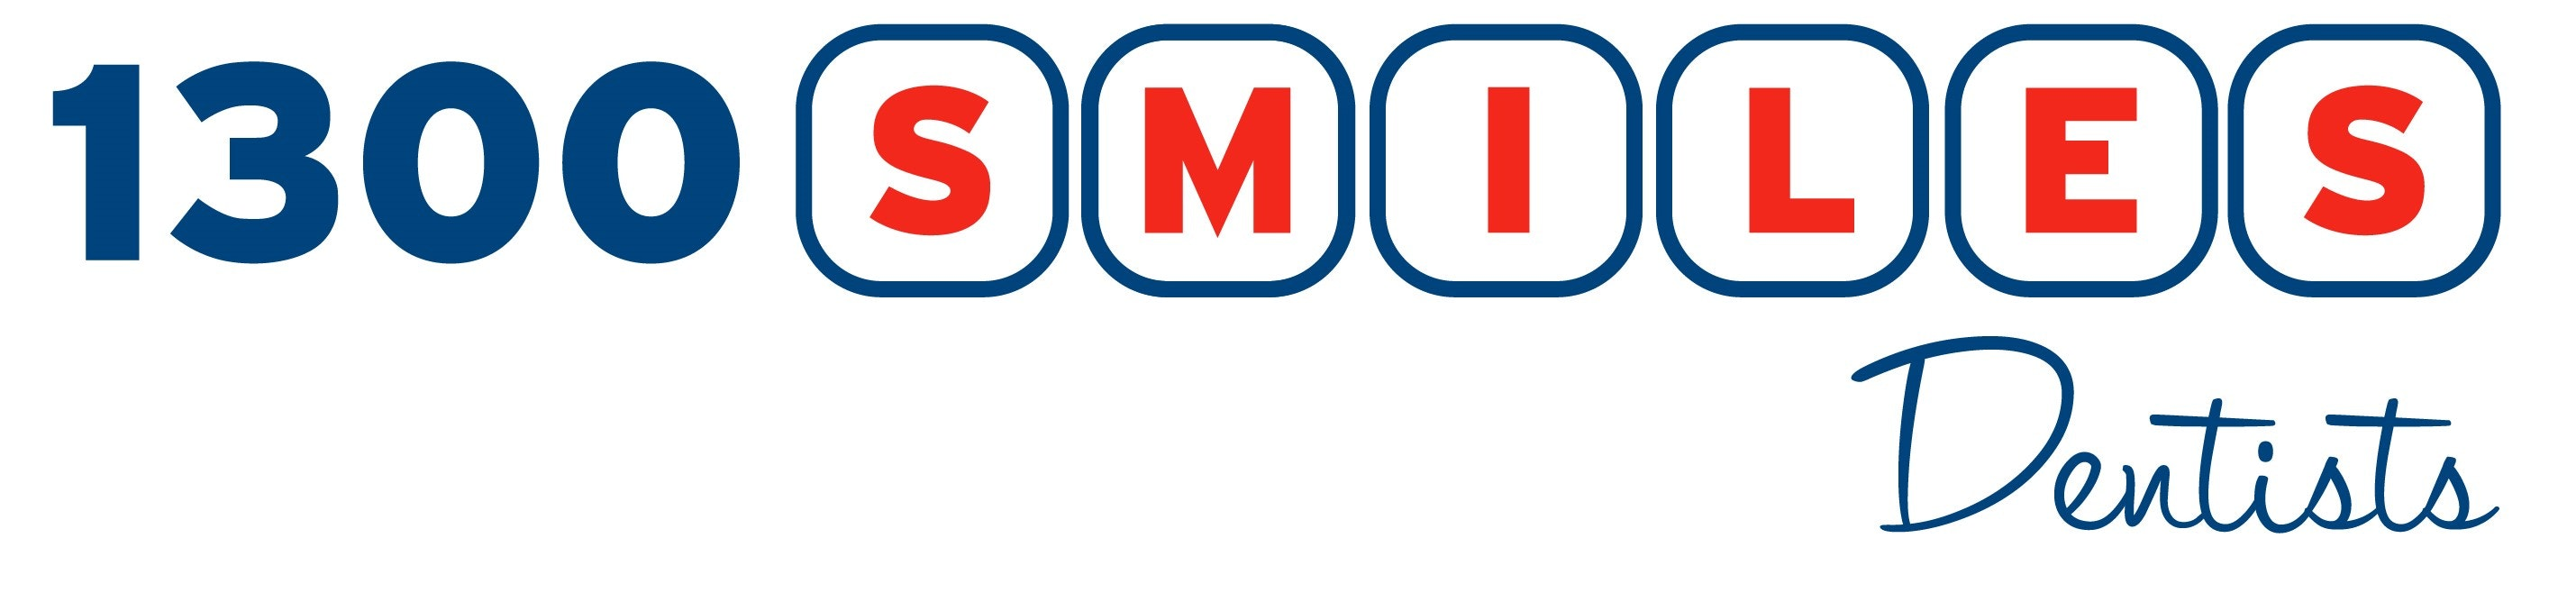 logo for 1300 Smiles - Cammeray Dentists